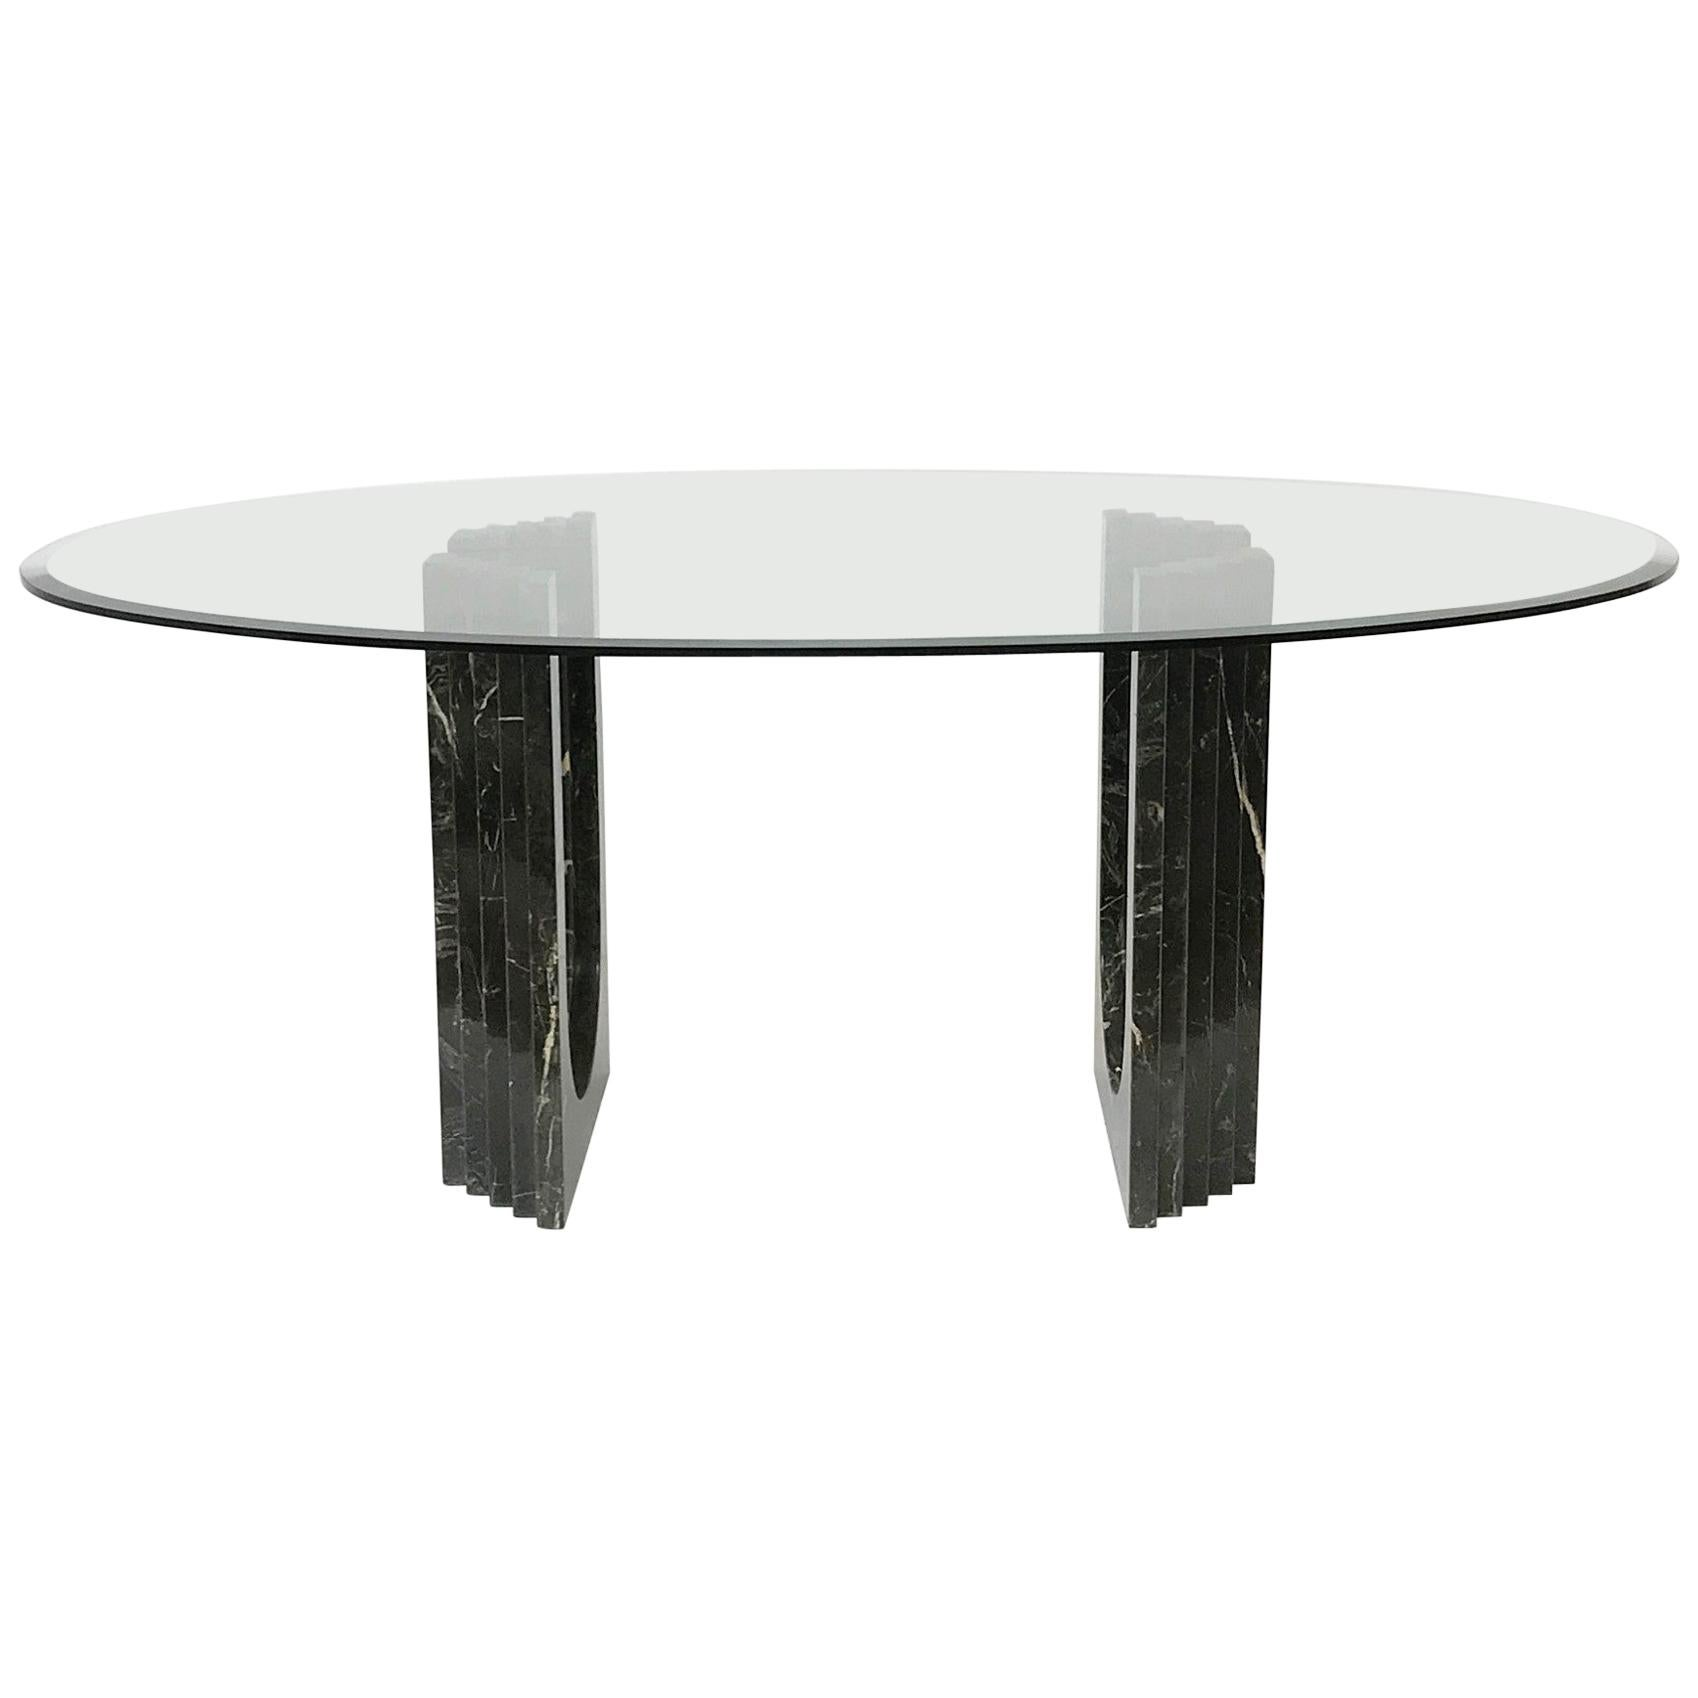 Black Marble and Beveled Glass Top Oval Dining Table